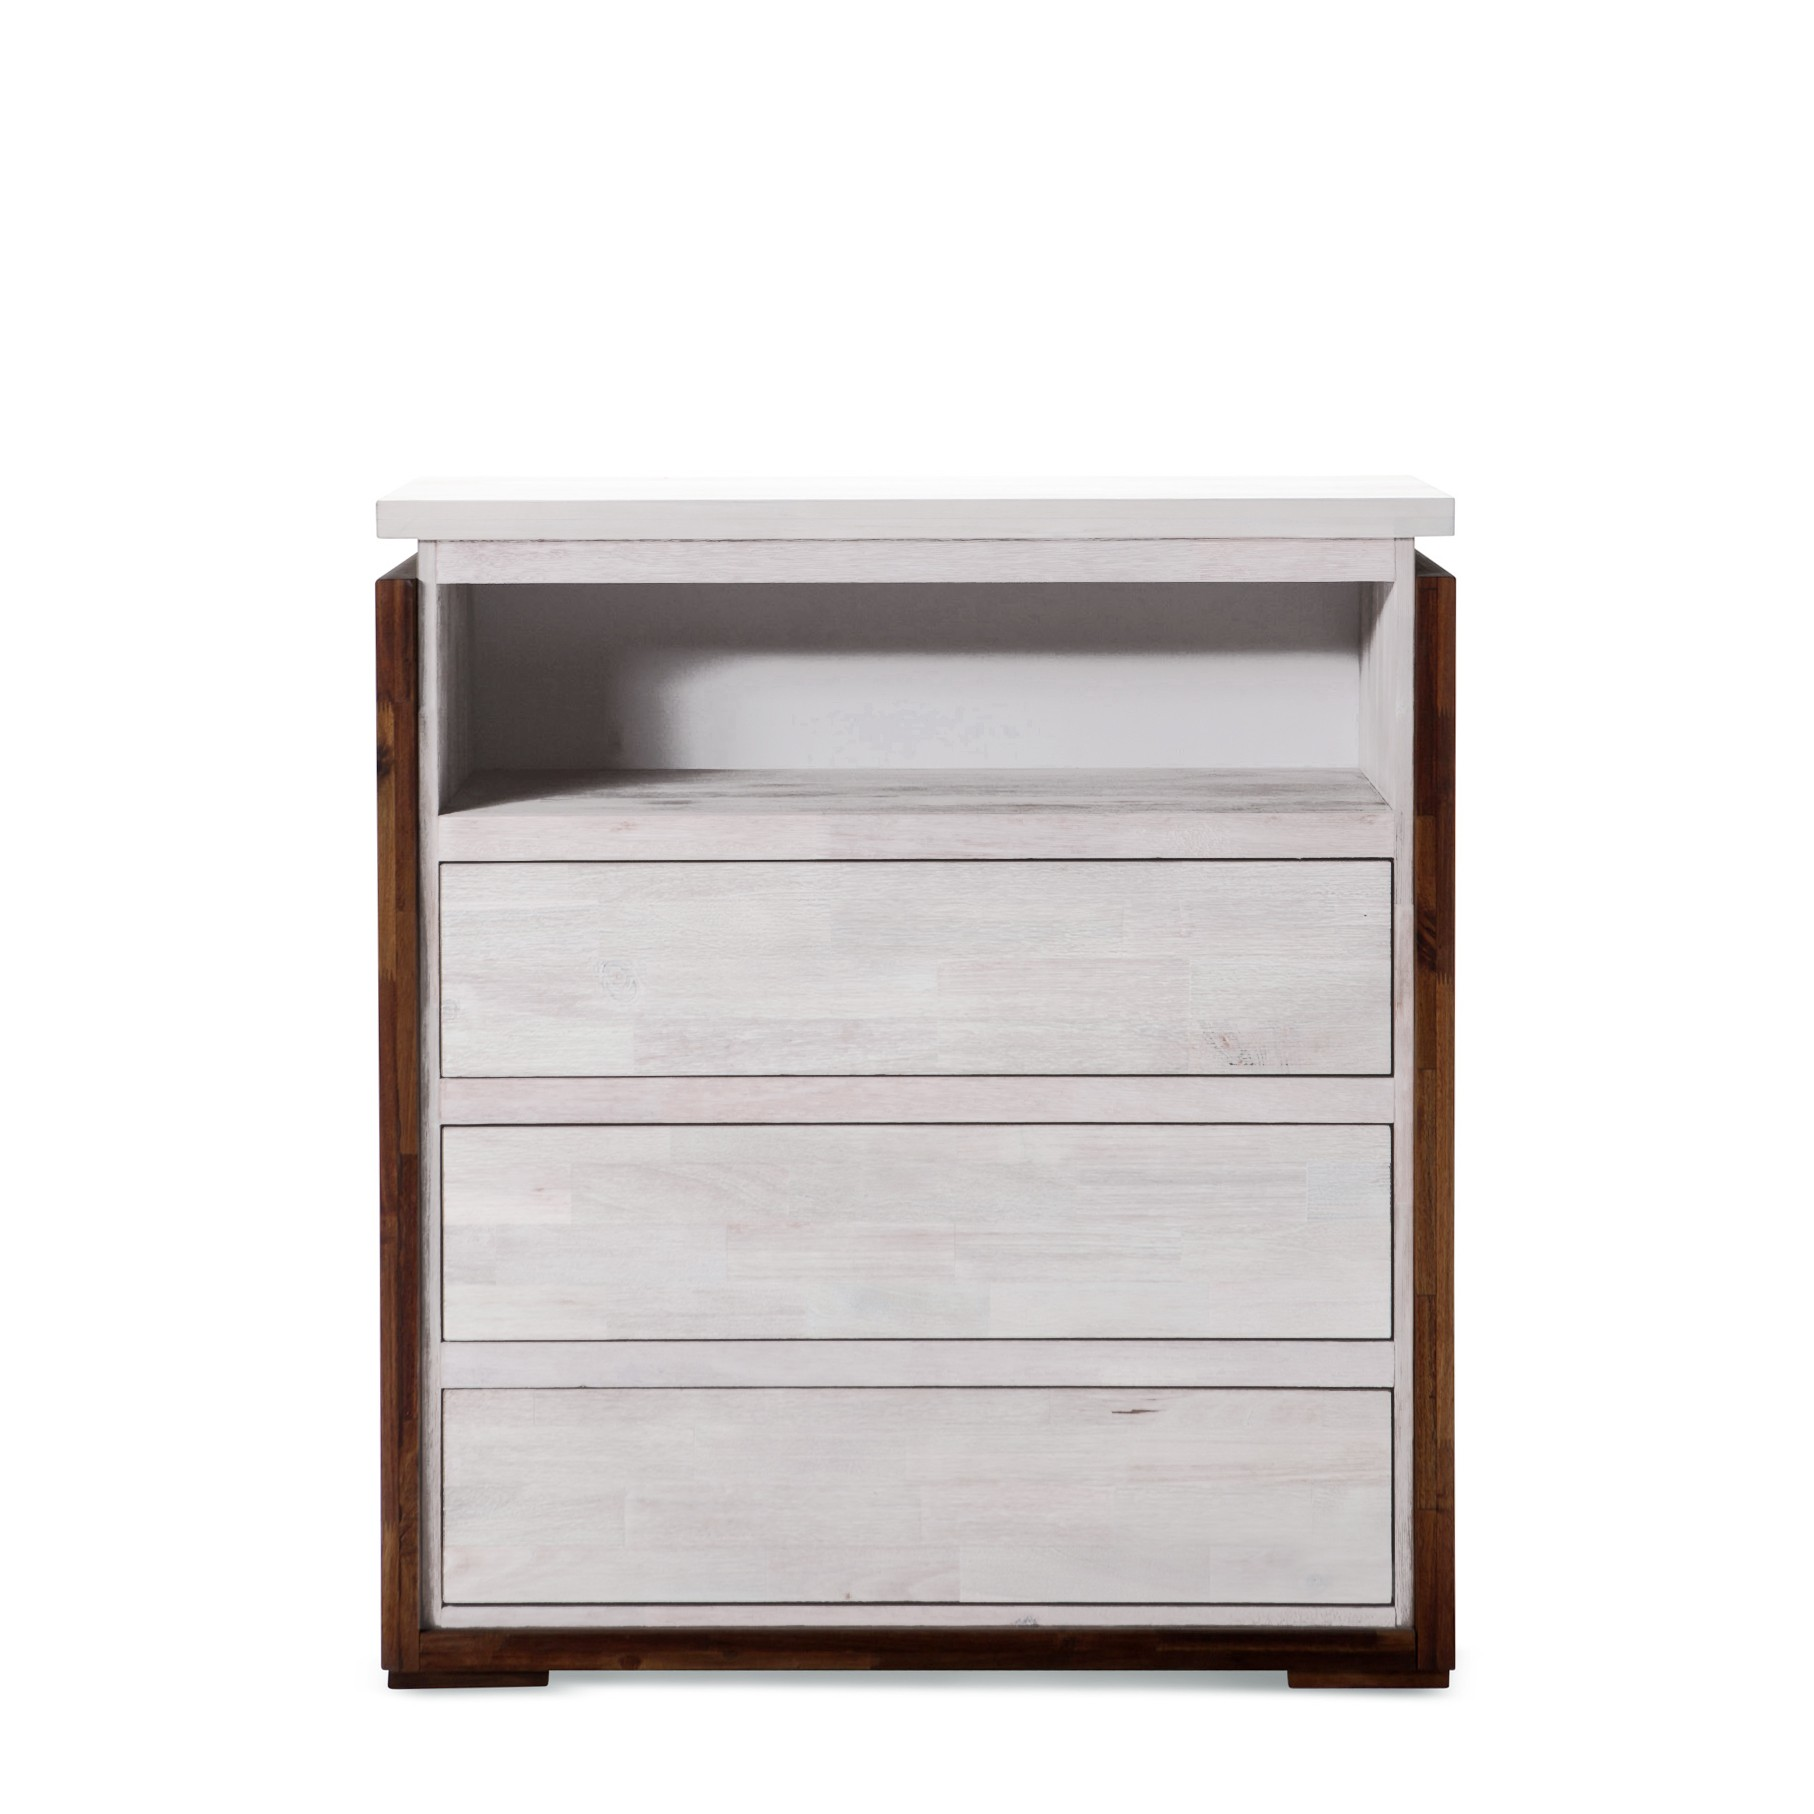 Catalina brand new solid rubber wood 4 storage drawers with shelf tallboy chest